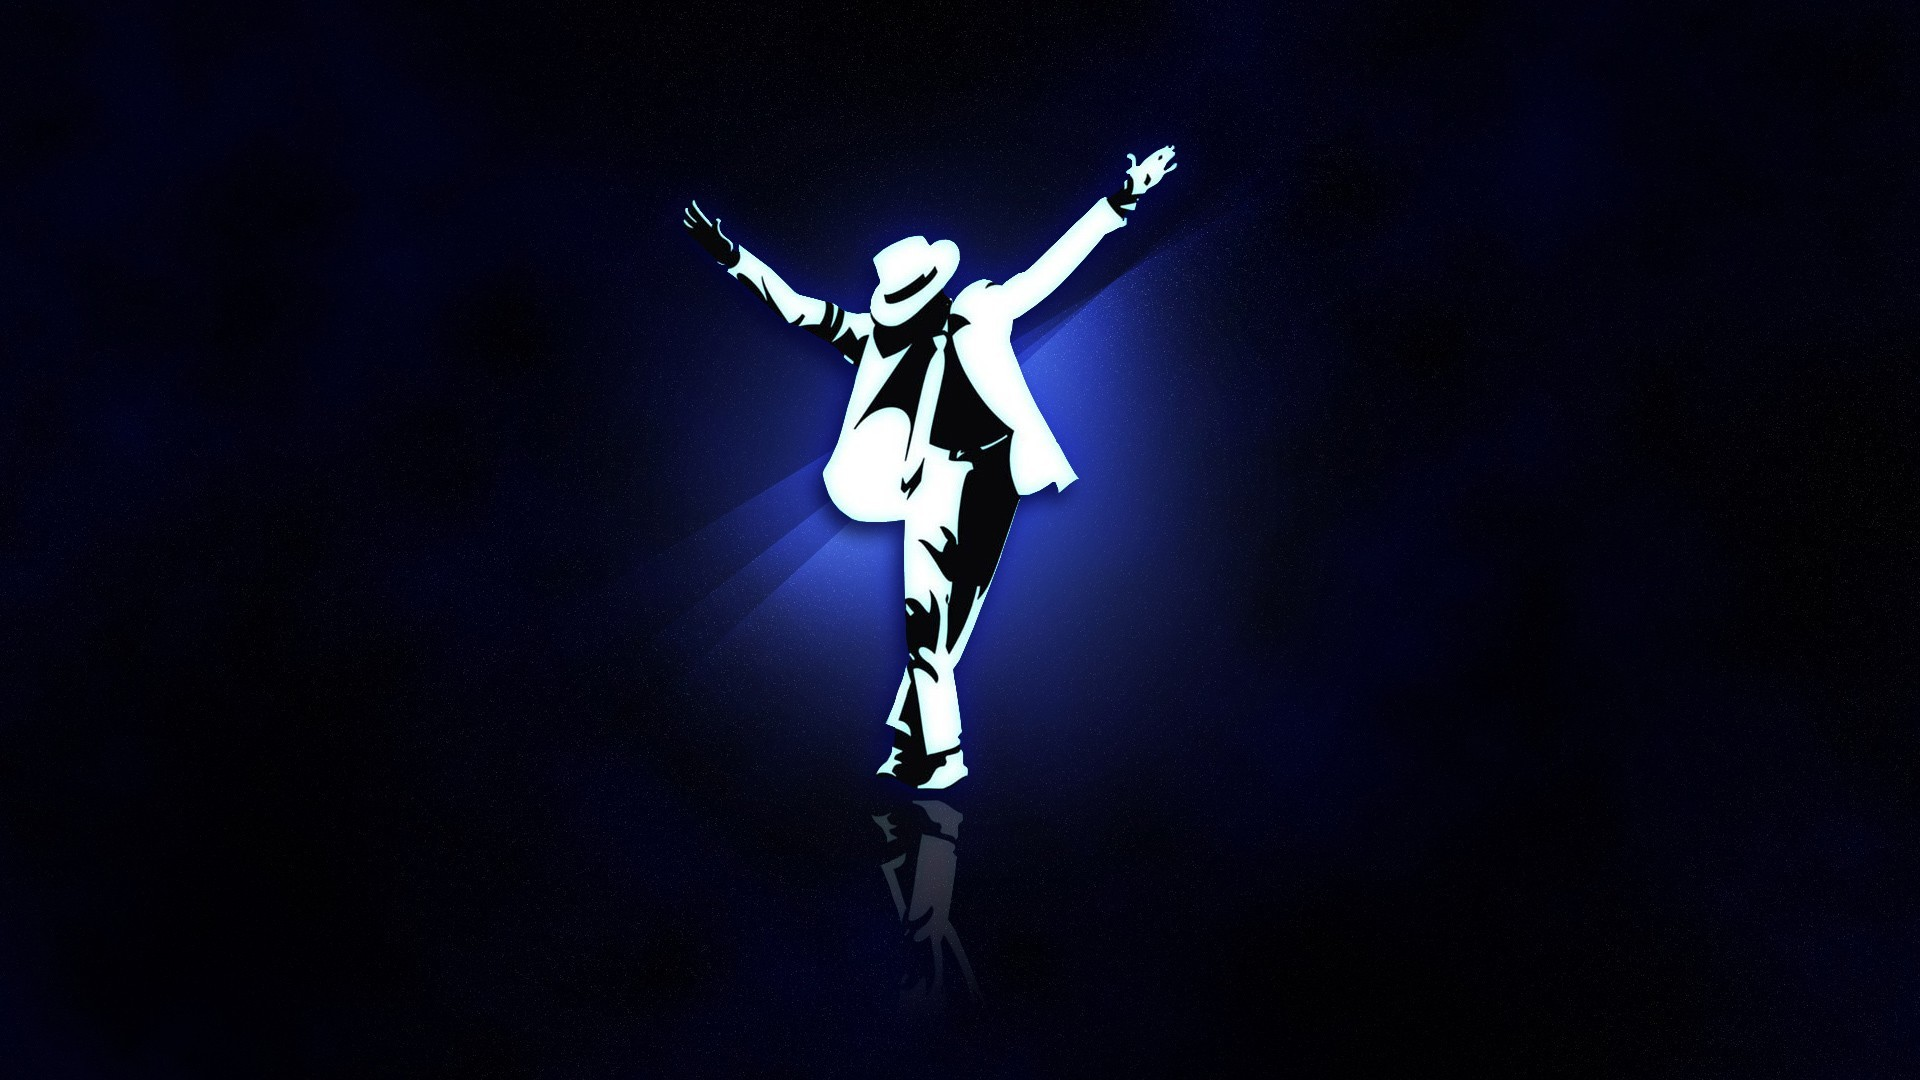 Michael Jackson Wallpapers HD blue background